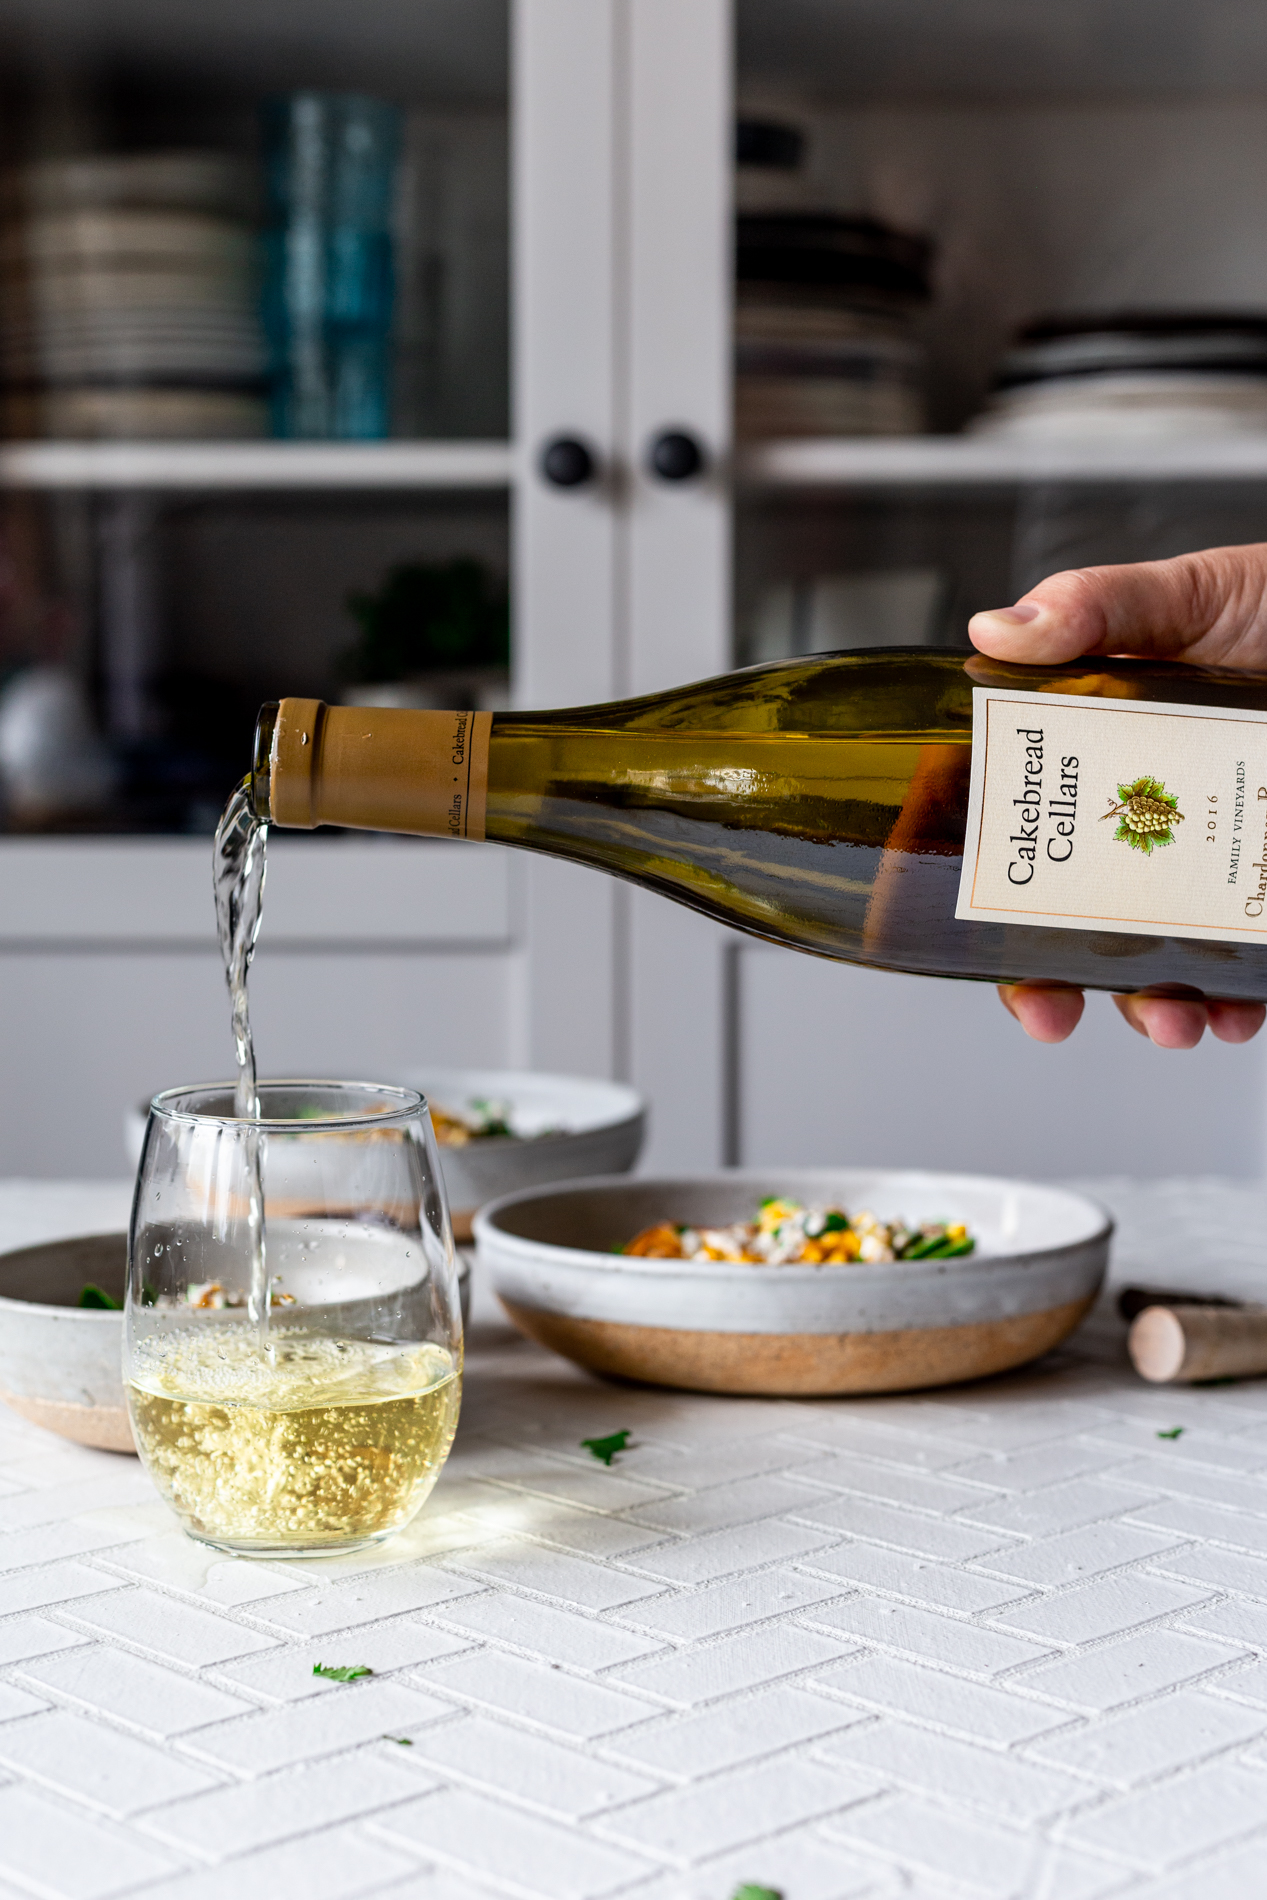 a bottle of cakebread cellars wine is being actively poured into a stemless wine glass, with three bowls of mexican street corn salad in the background